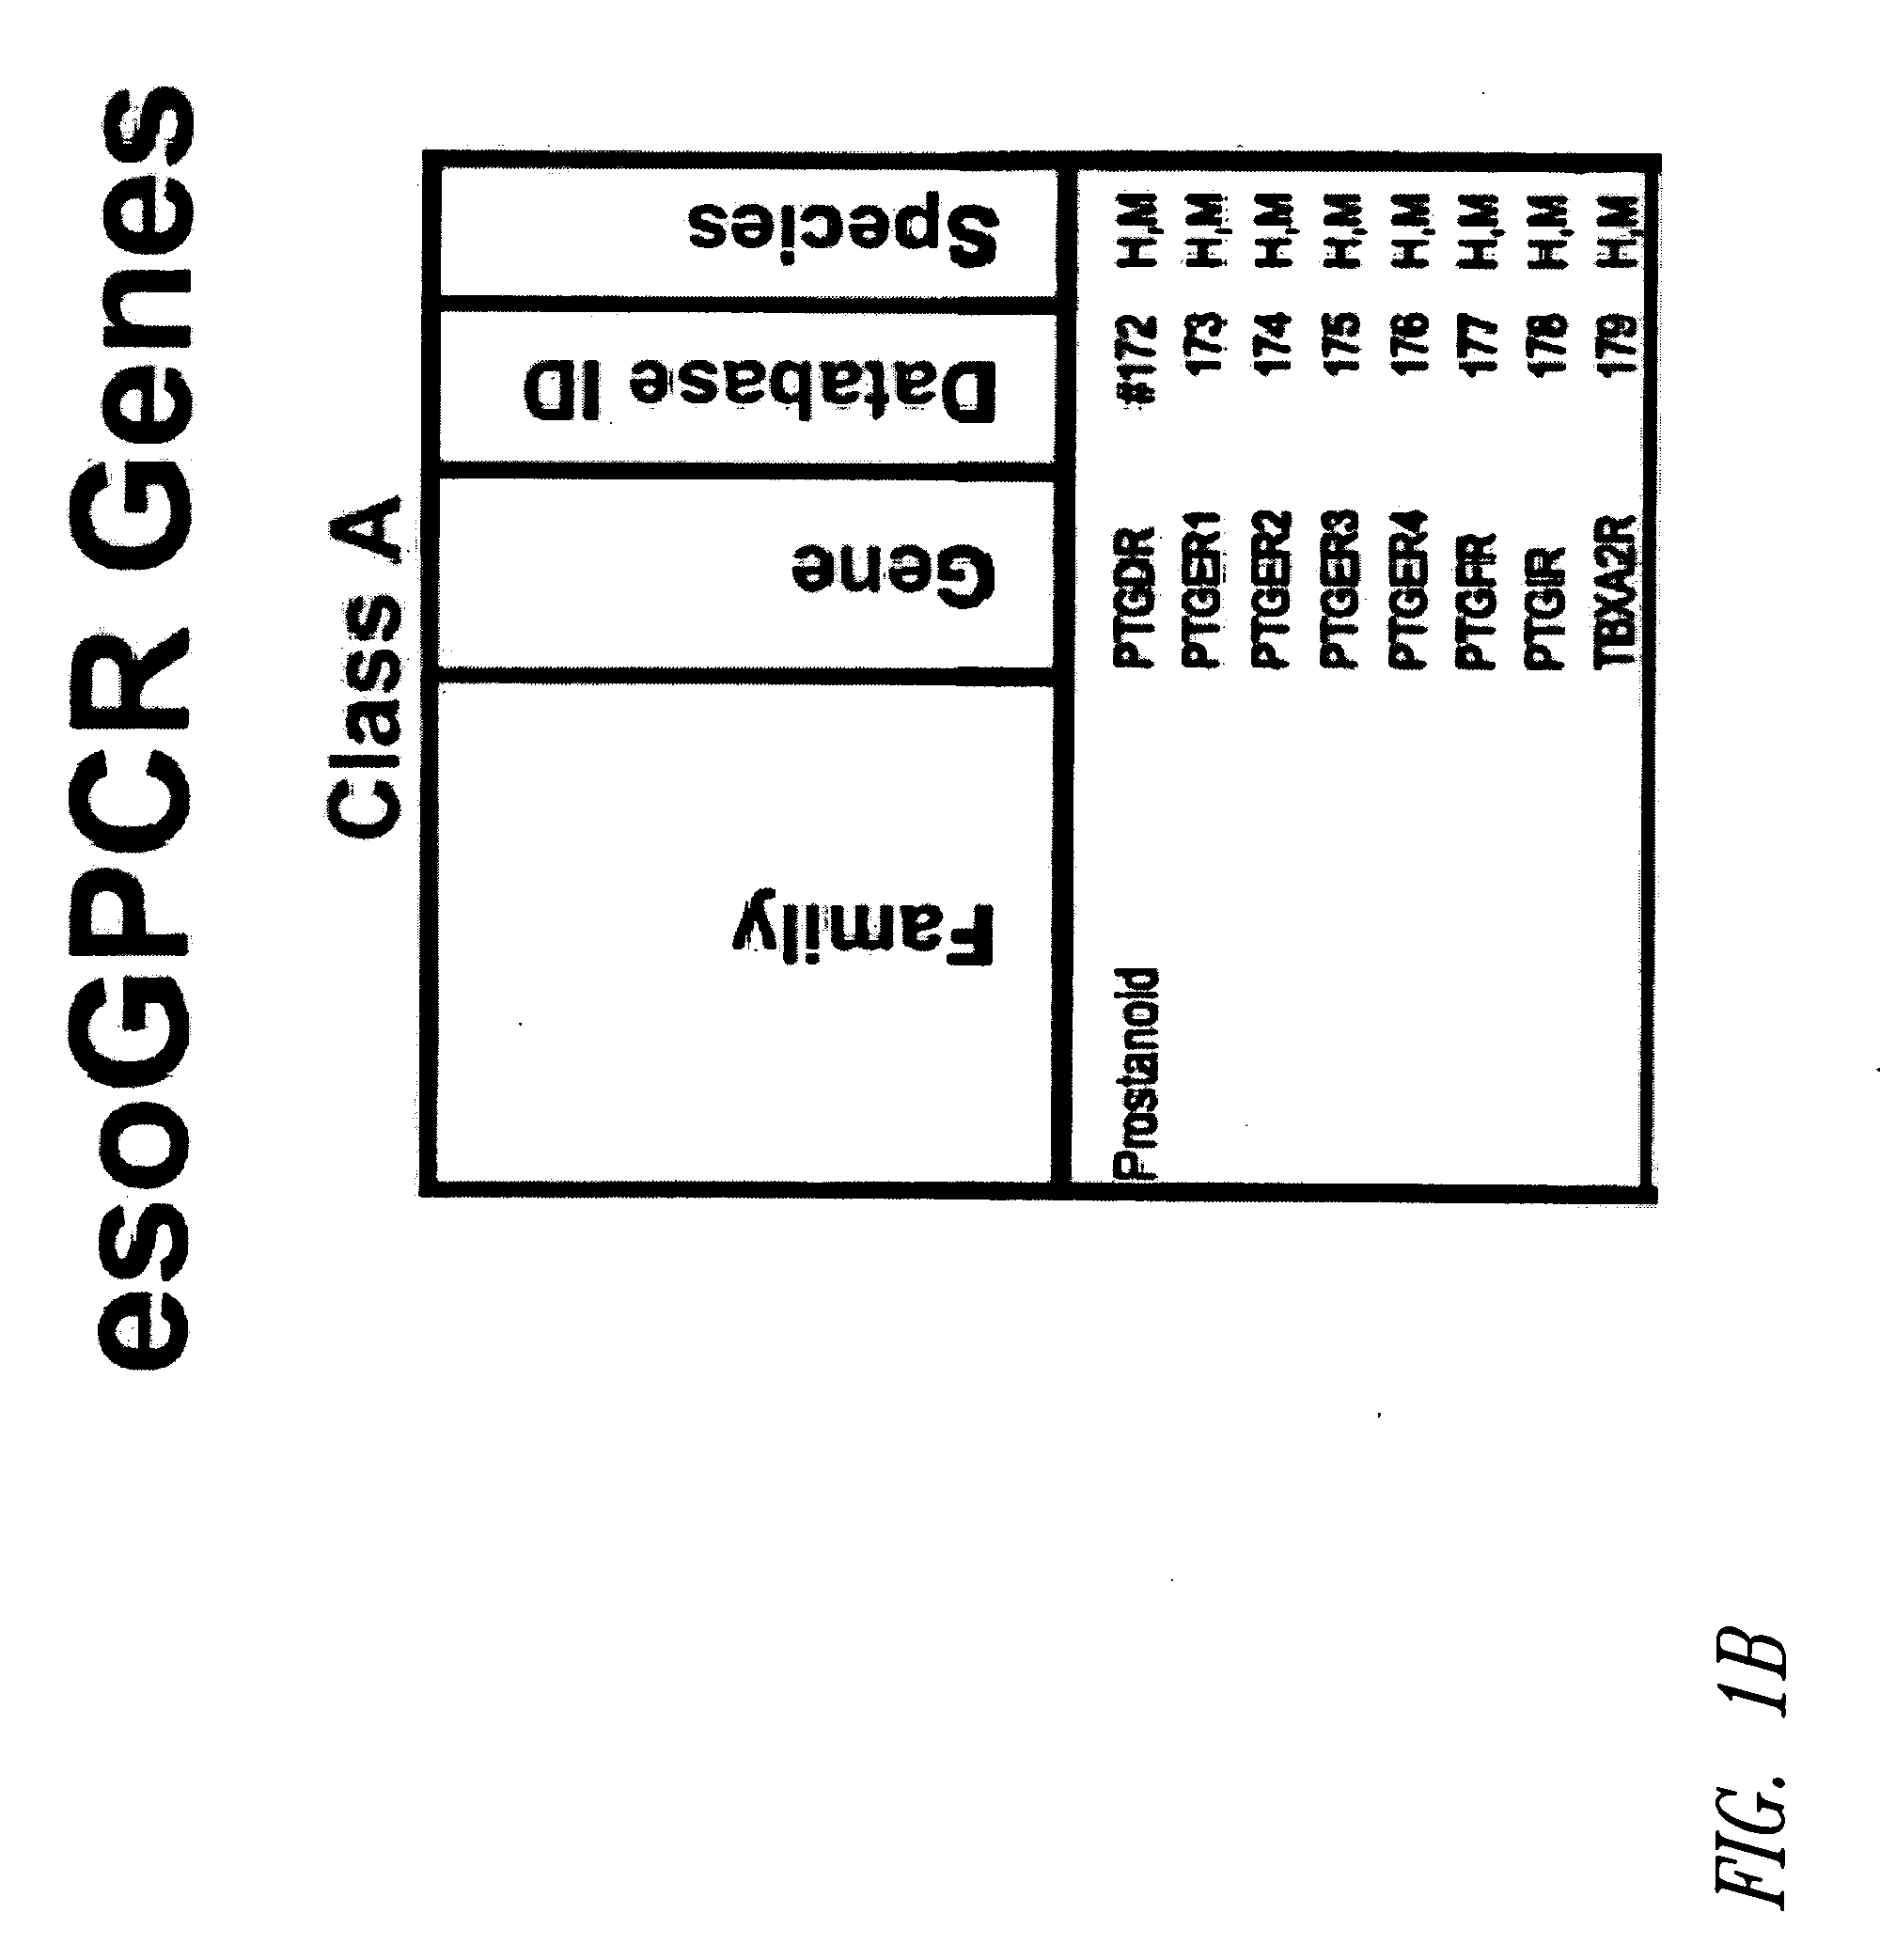 Us20080260744a1 g protein coupled receptors and uses thereof us20080260744a1 g protein coupled receptors and uses thereof google patents urtaz Choice Image